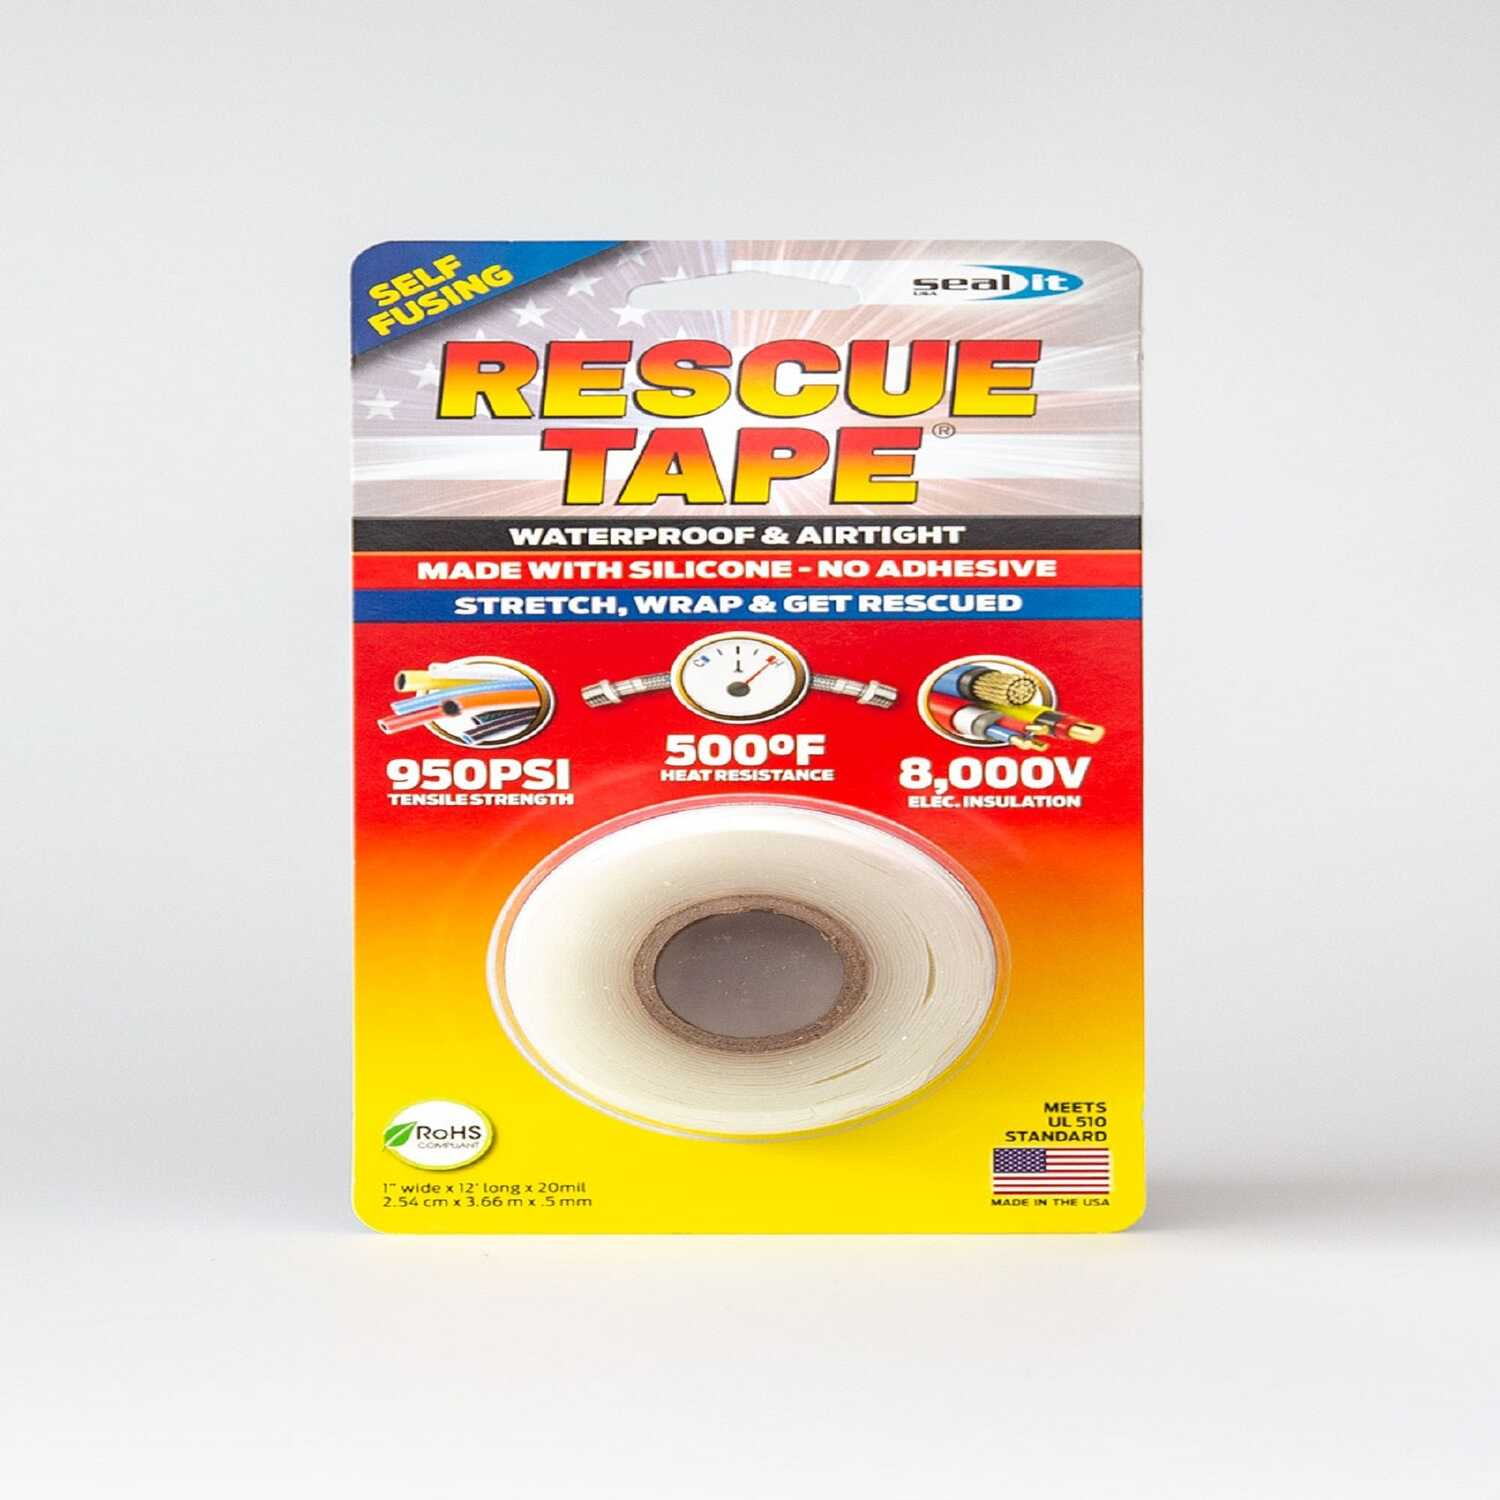 Rescue Tape  1 in. W x 12 ft. L Clear  6 oz. Silicone Tape